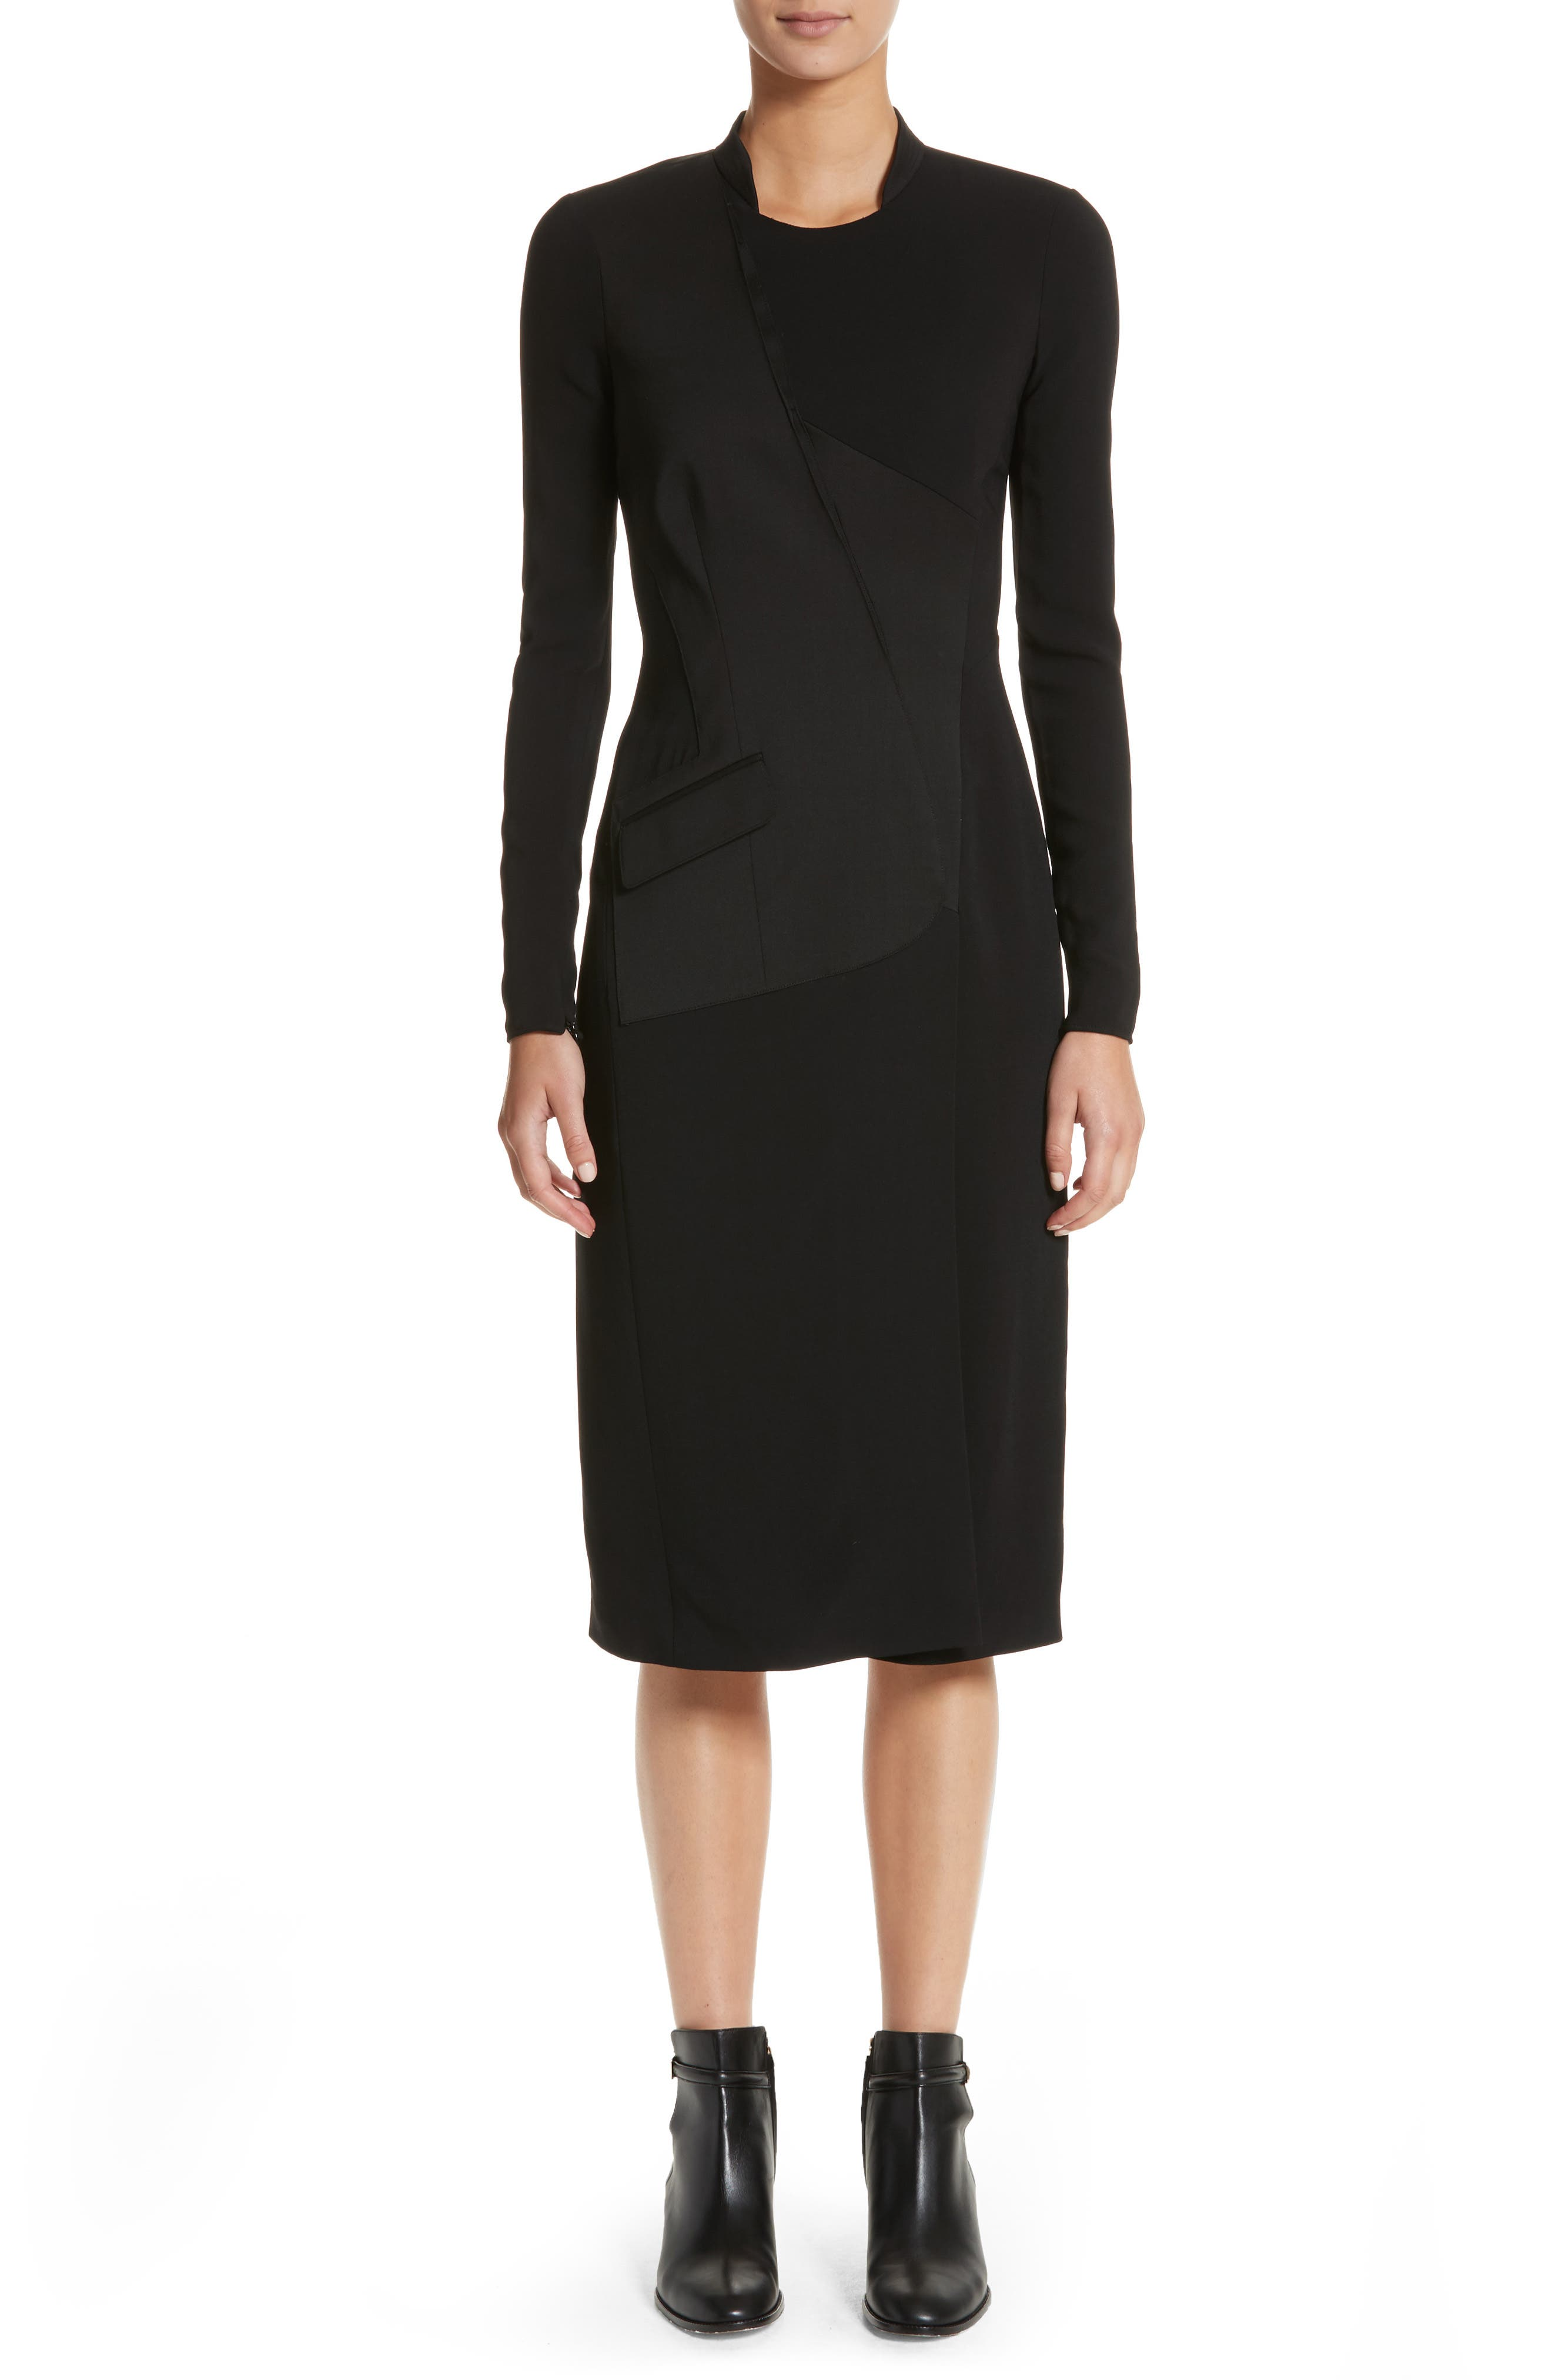 Burberry Miriam Sheath Dress